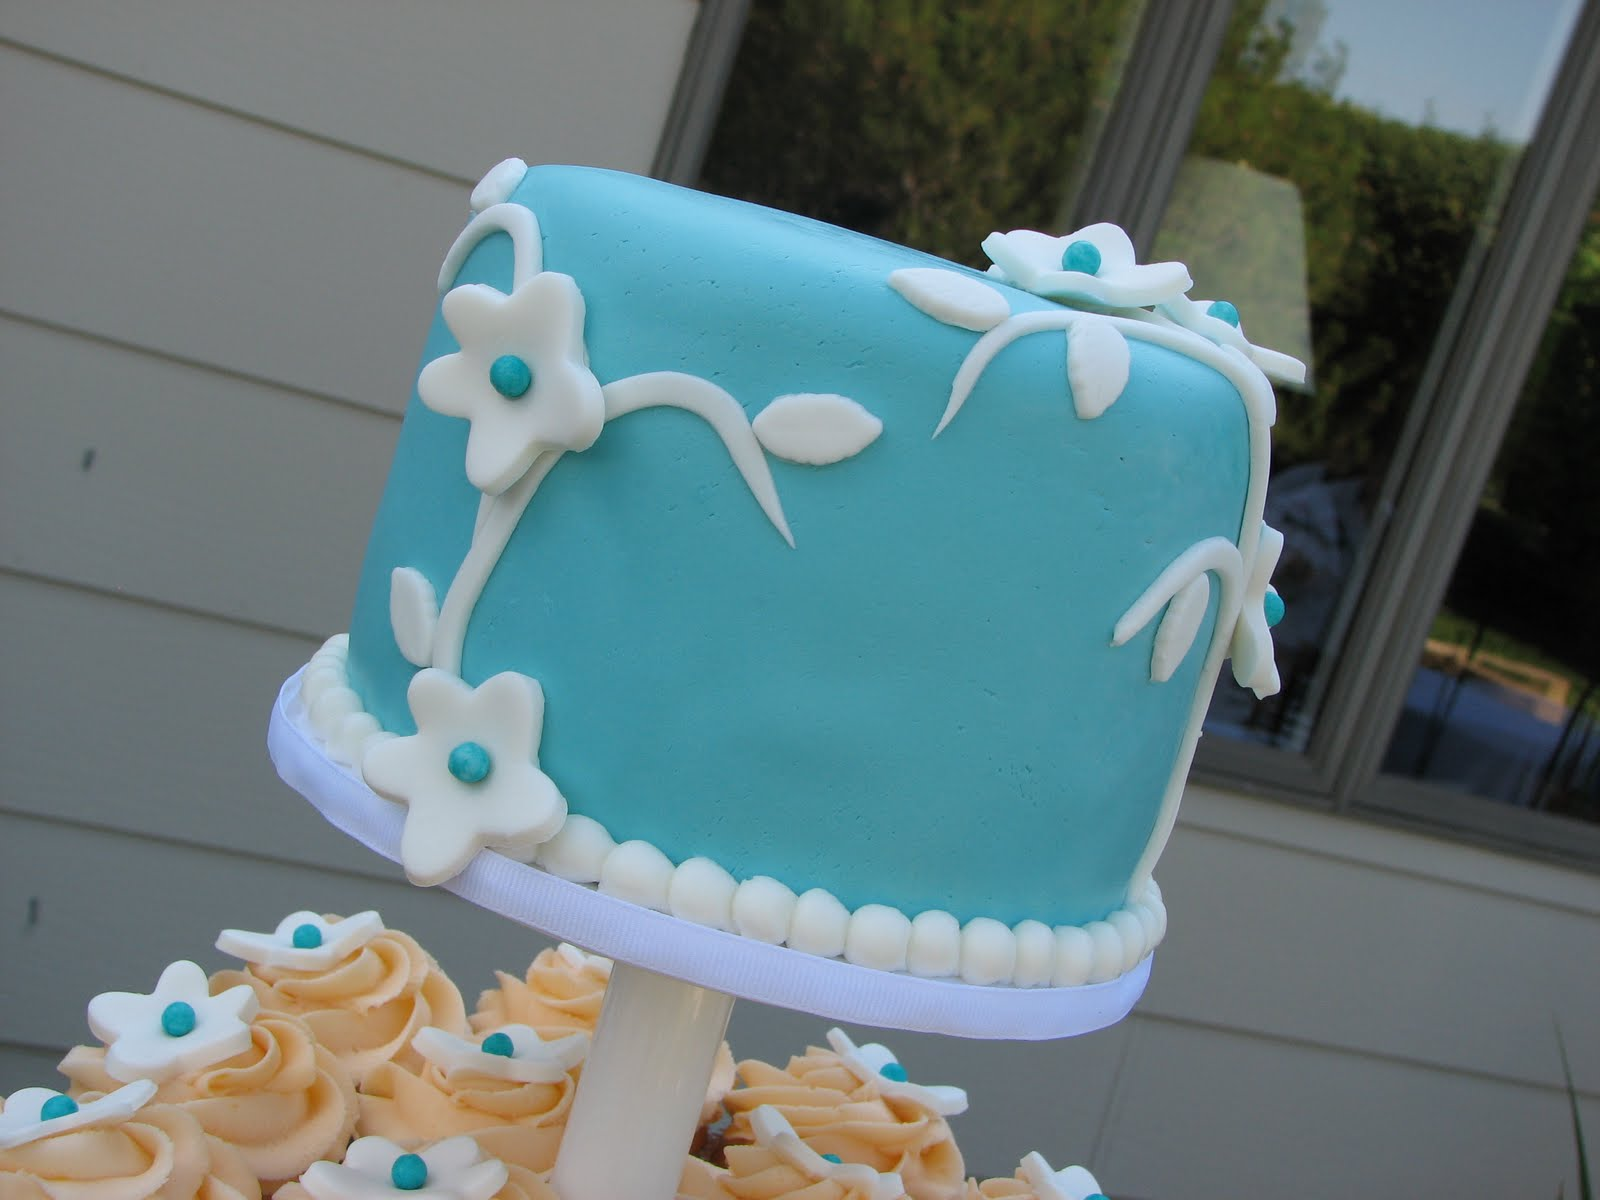 Orange and Aqua Wedding Cake http://decadentdesignsbylori.blogspot.com/2011/08/turquoise-and-orange-cupcake-wedding.html